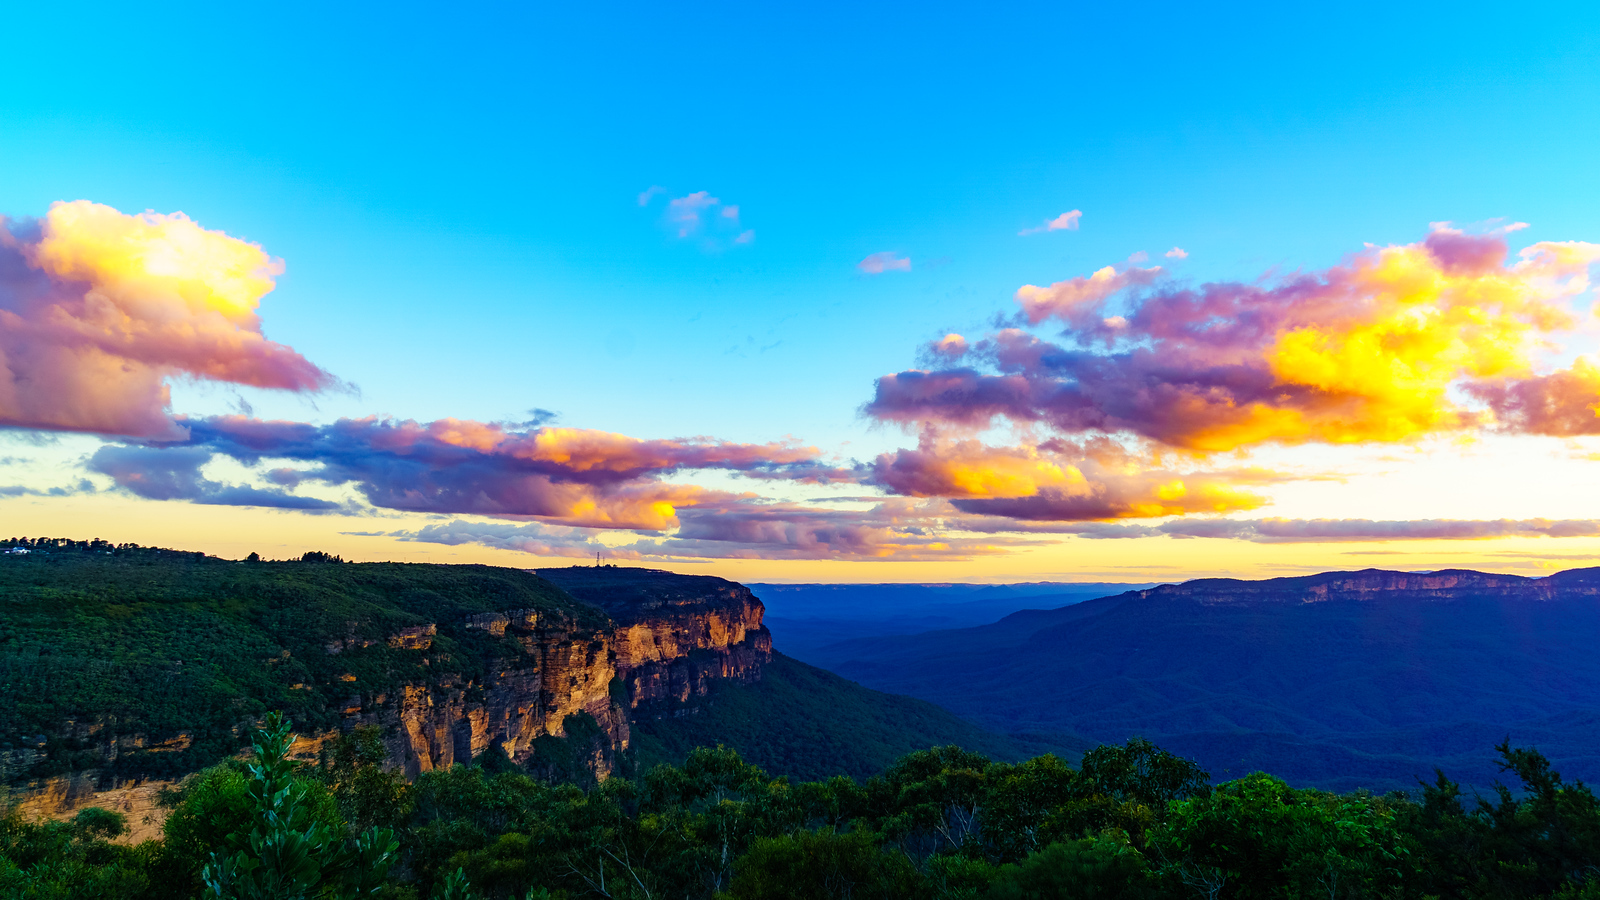 Sunset over Blue Mountains